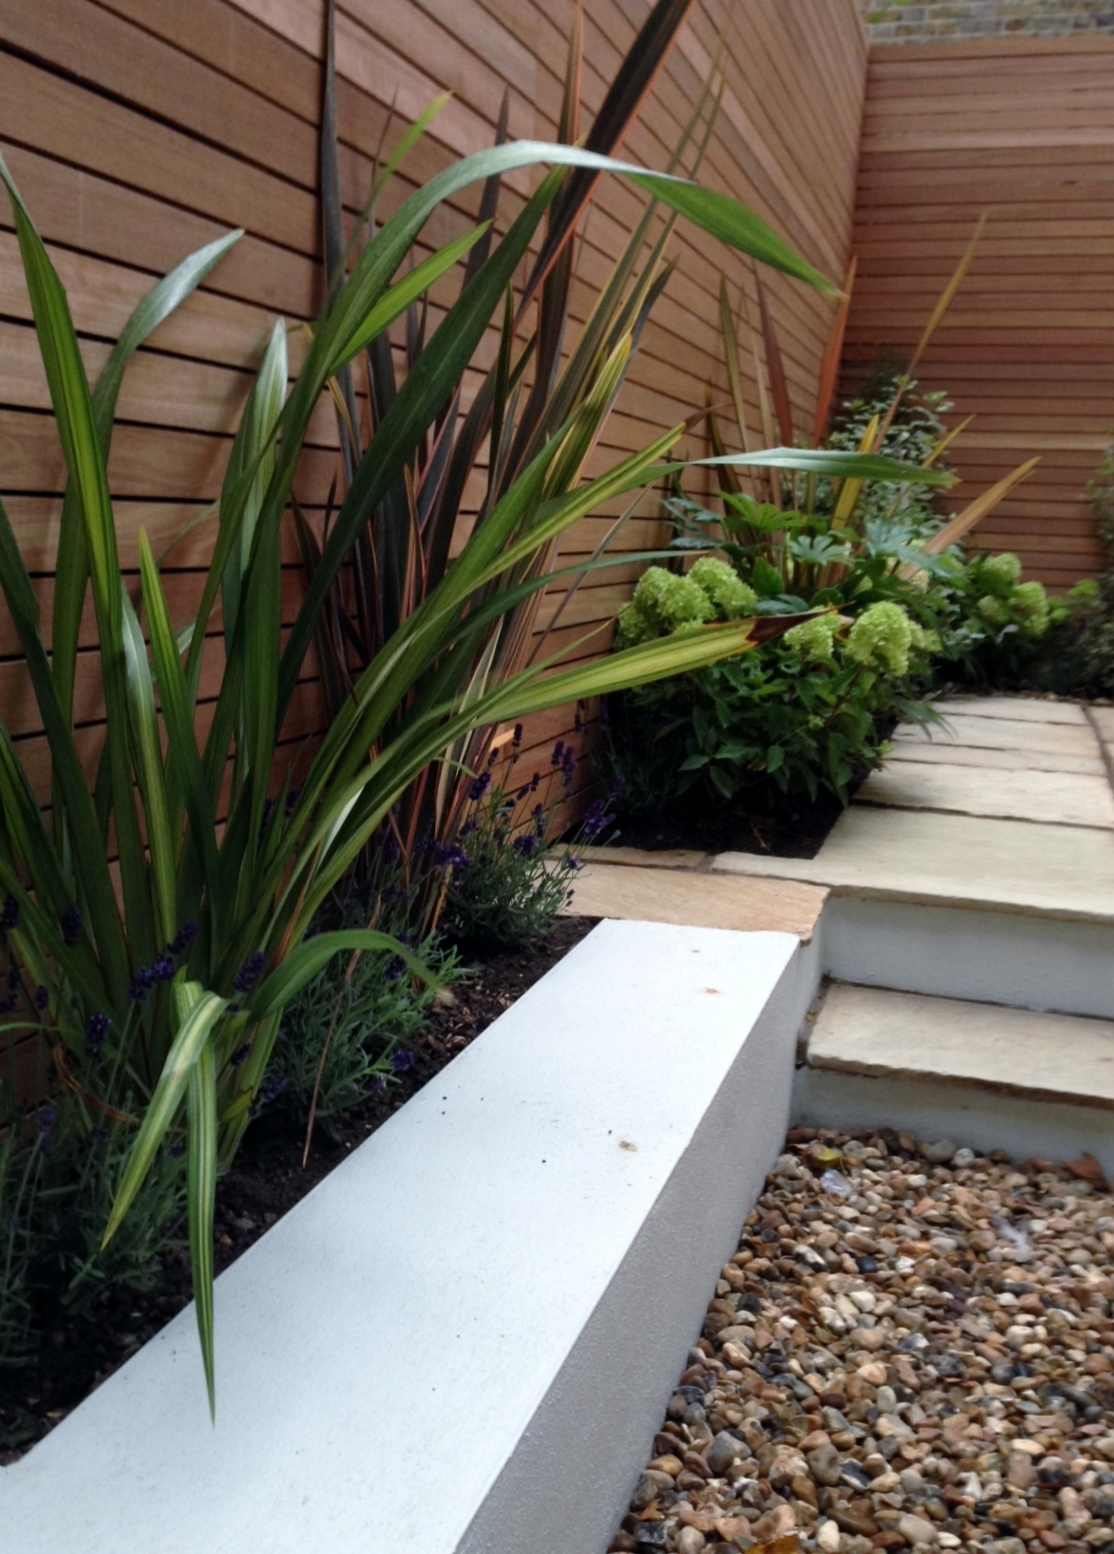 clapham garden design sandstone paving hardwood privacy screen shingle trellis fence modern low maintenance ideas (5)